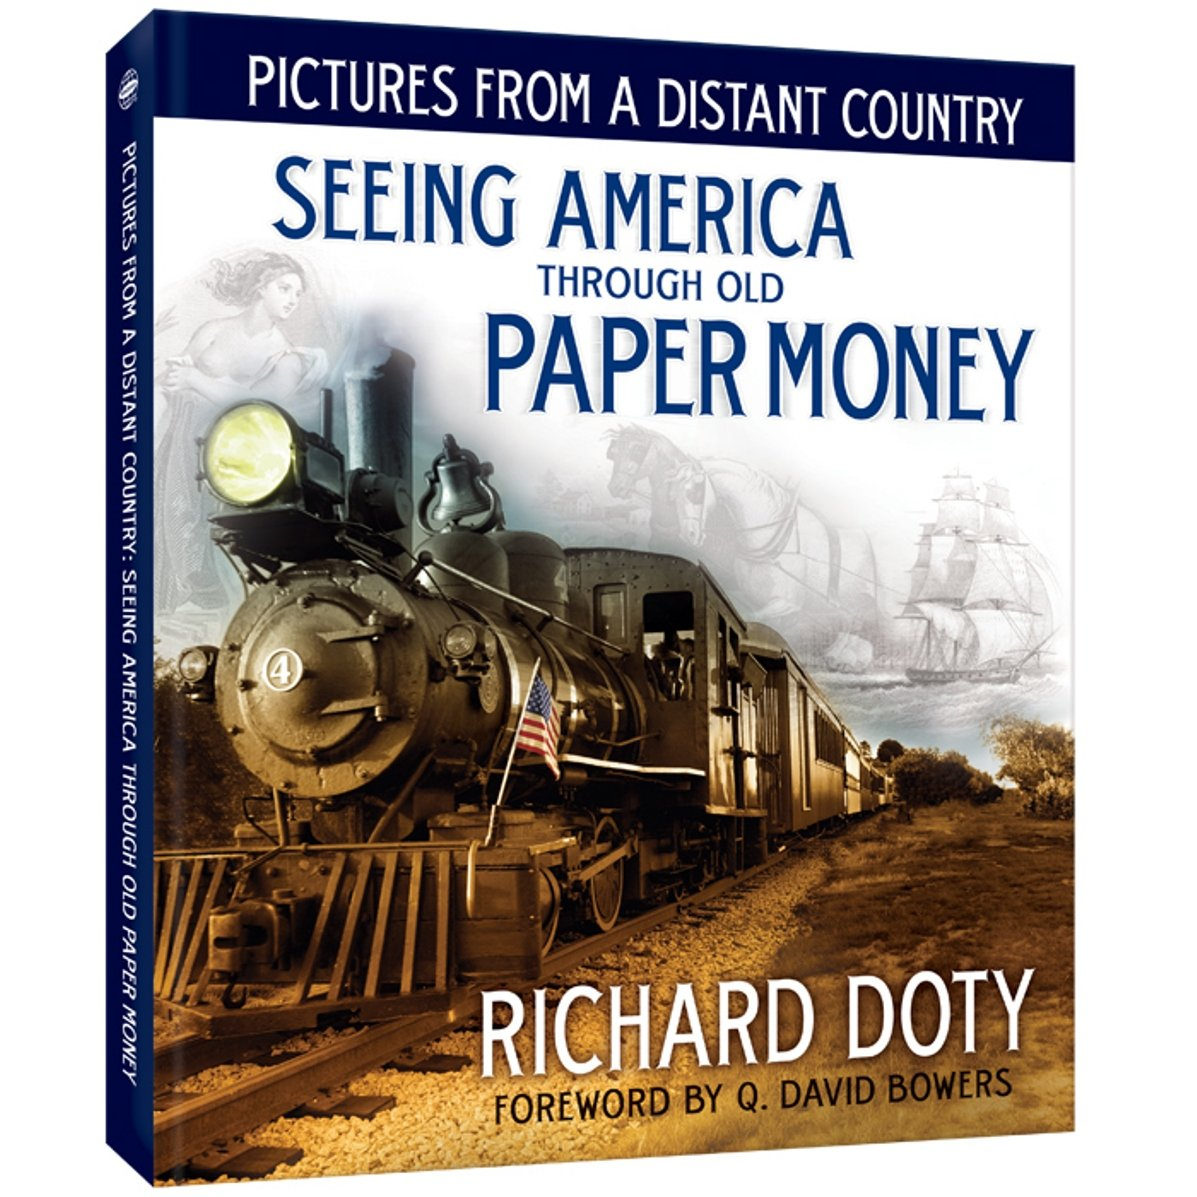 pictures-from-a-distant-country-seeing-america-through-old-paper-money